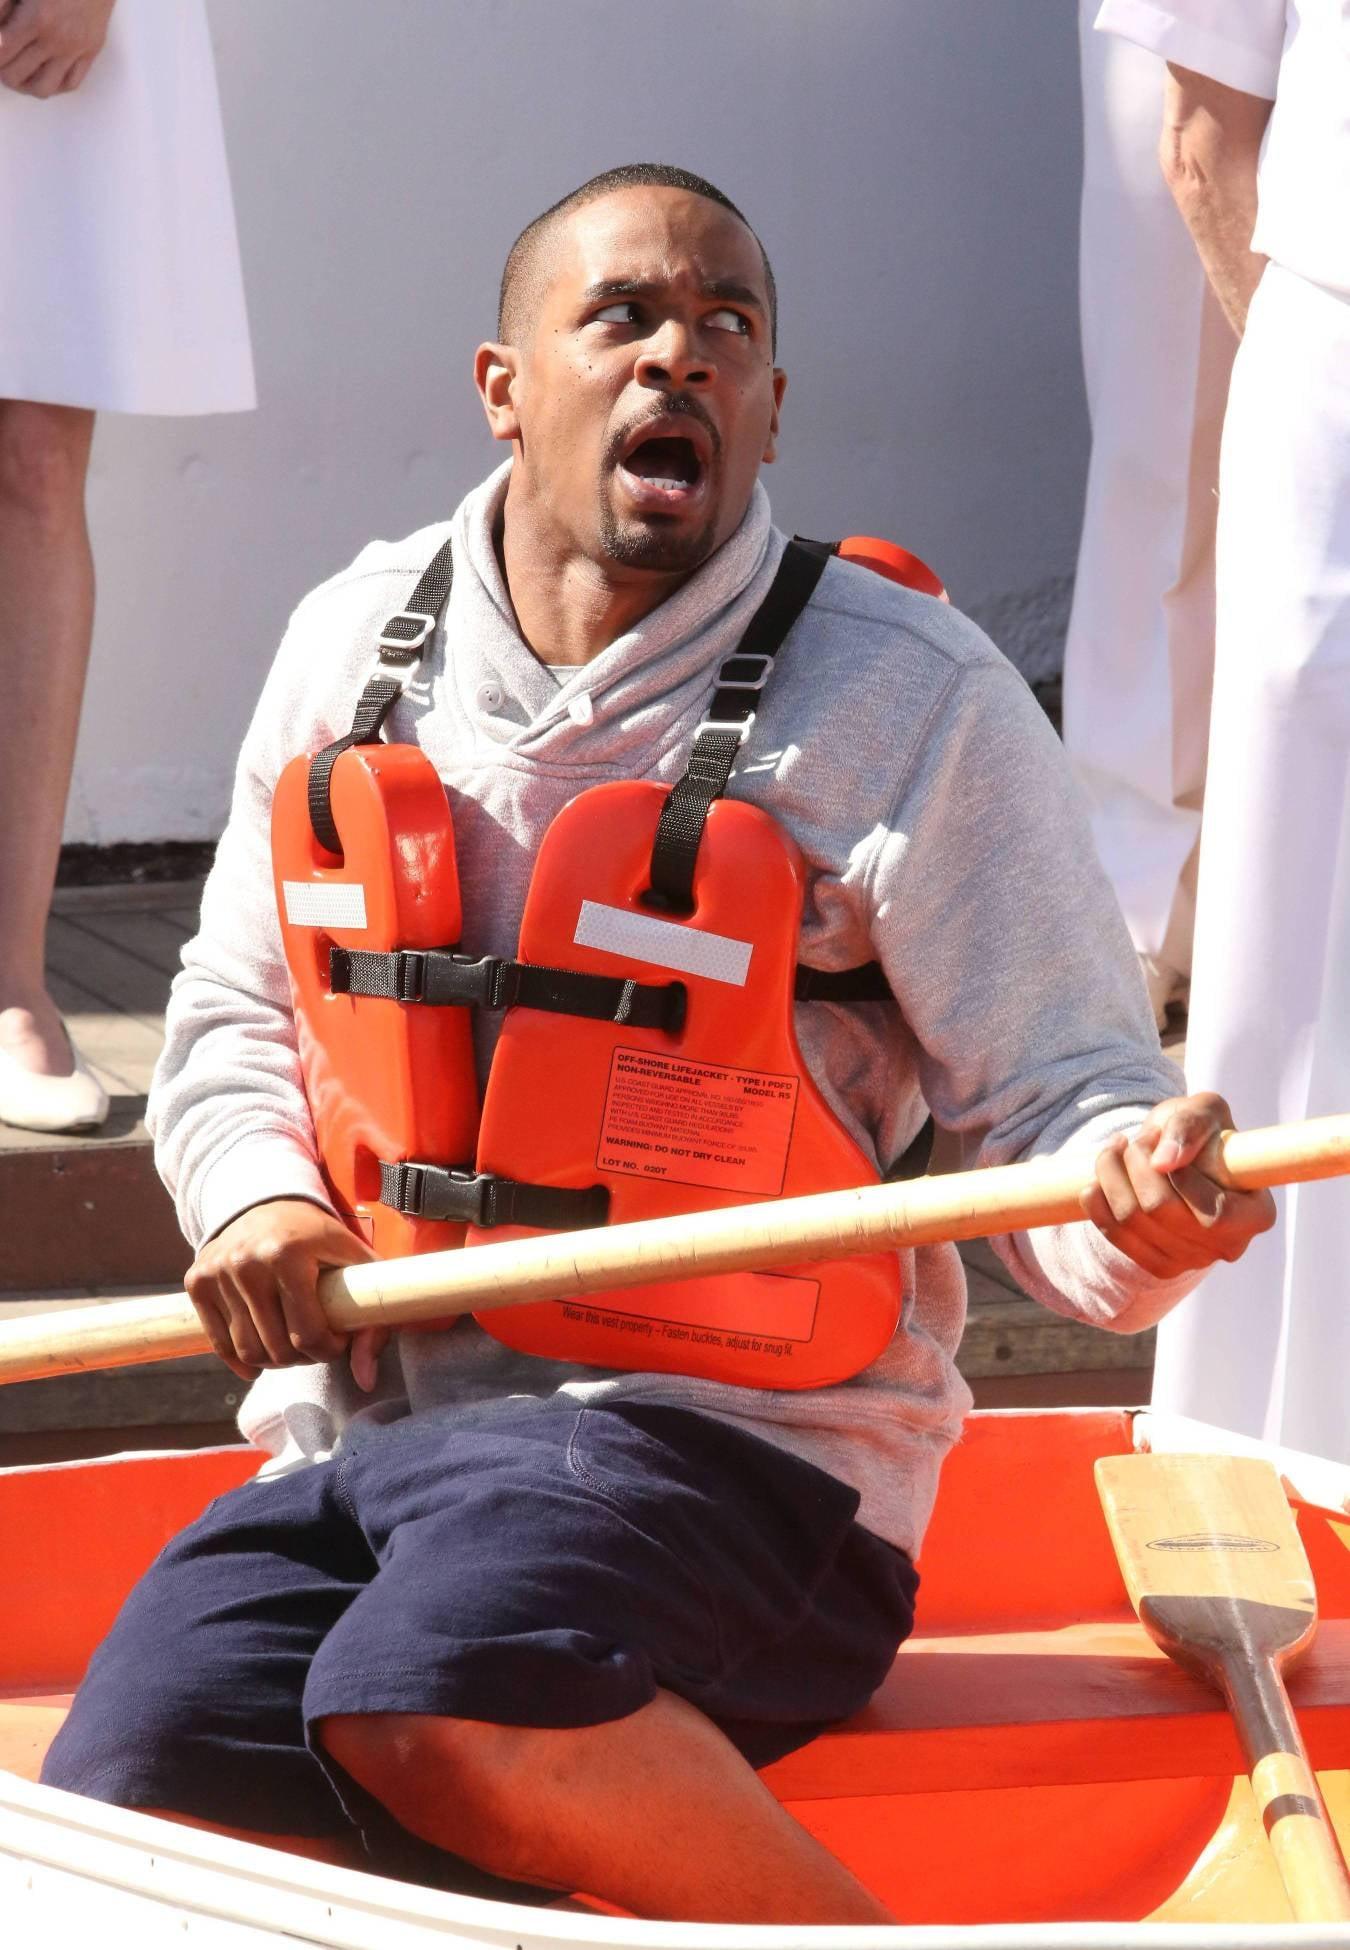 Coach (Damon Wayans Jr.) has to face his fear of boats.